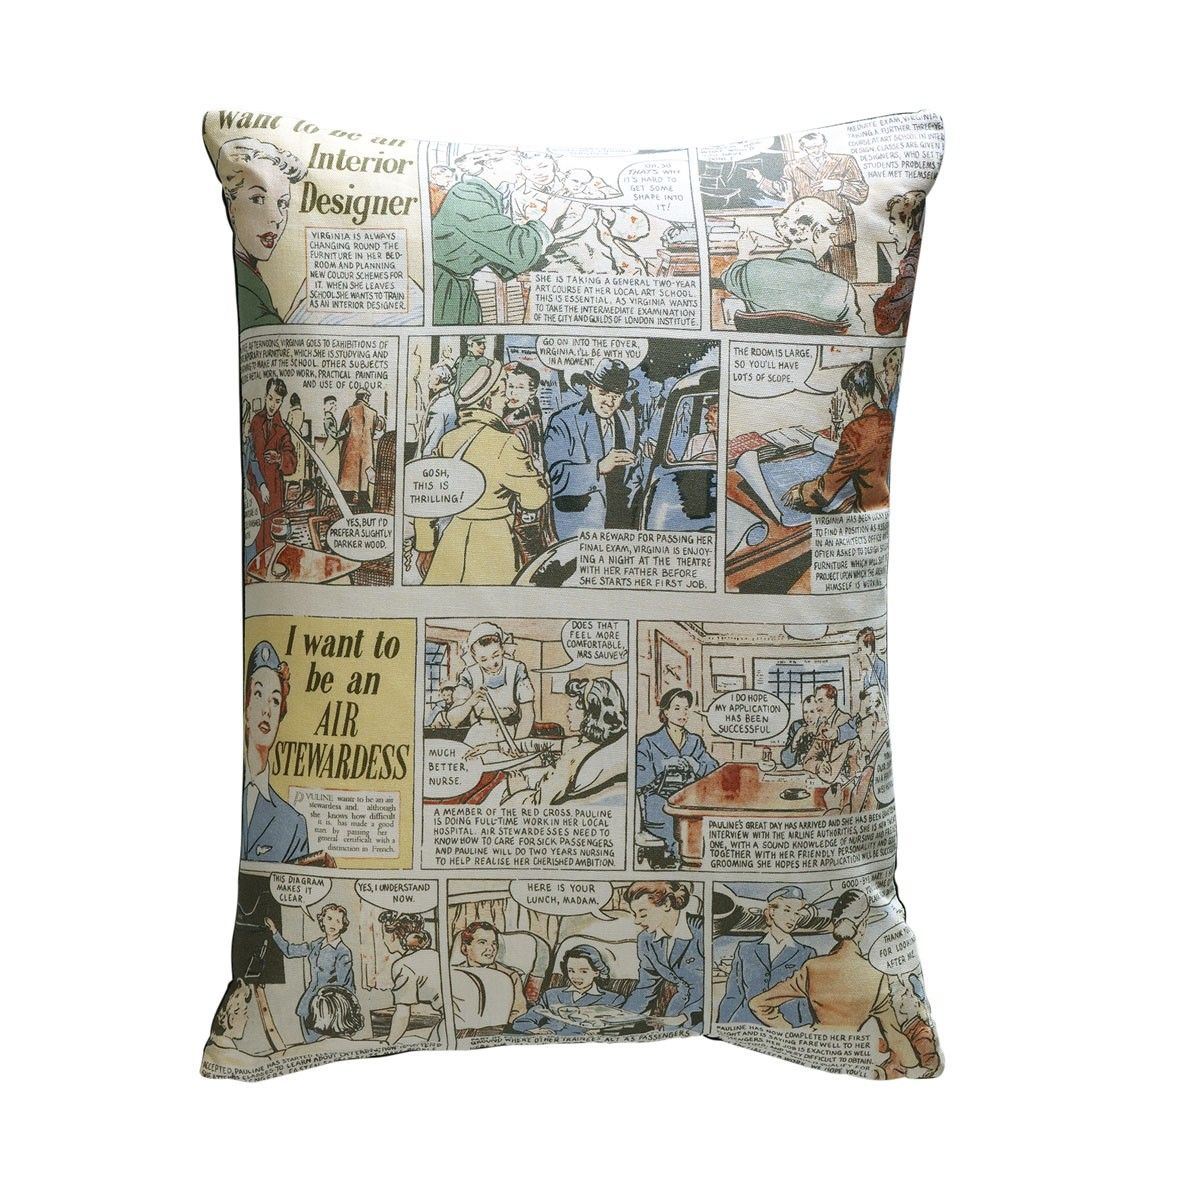 I Want To Be An Interior Designer Cushion From Andrew Martin